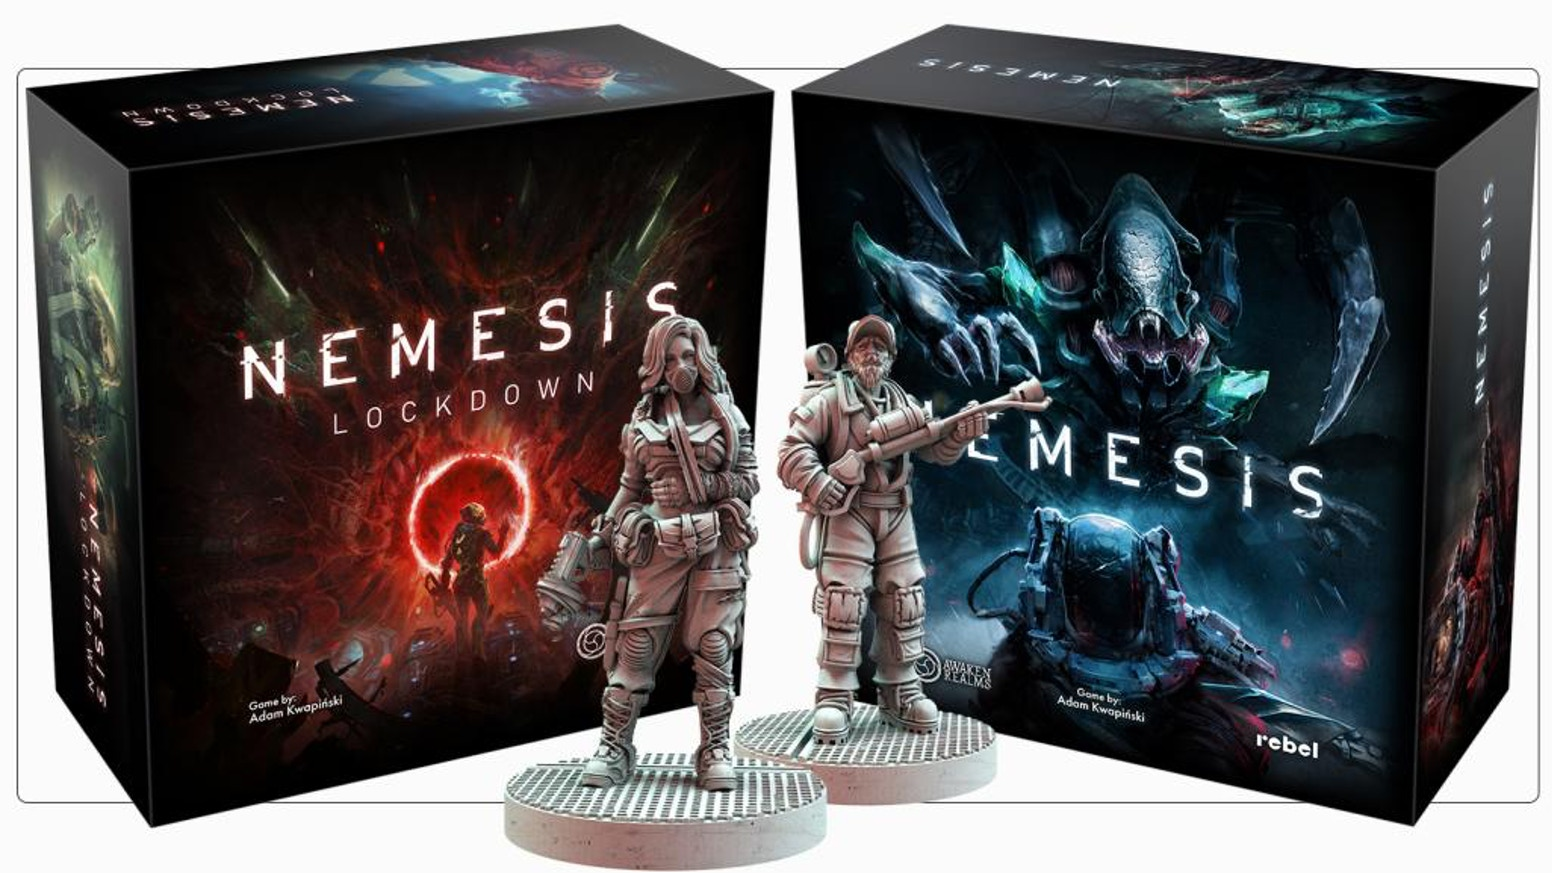 Stand alone expansion to one of the biggest Board Game hit of recent years, Nemesis